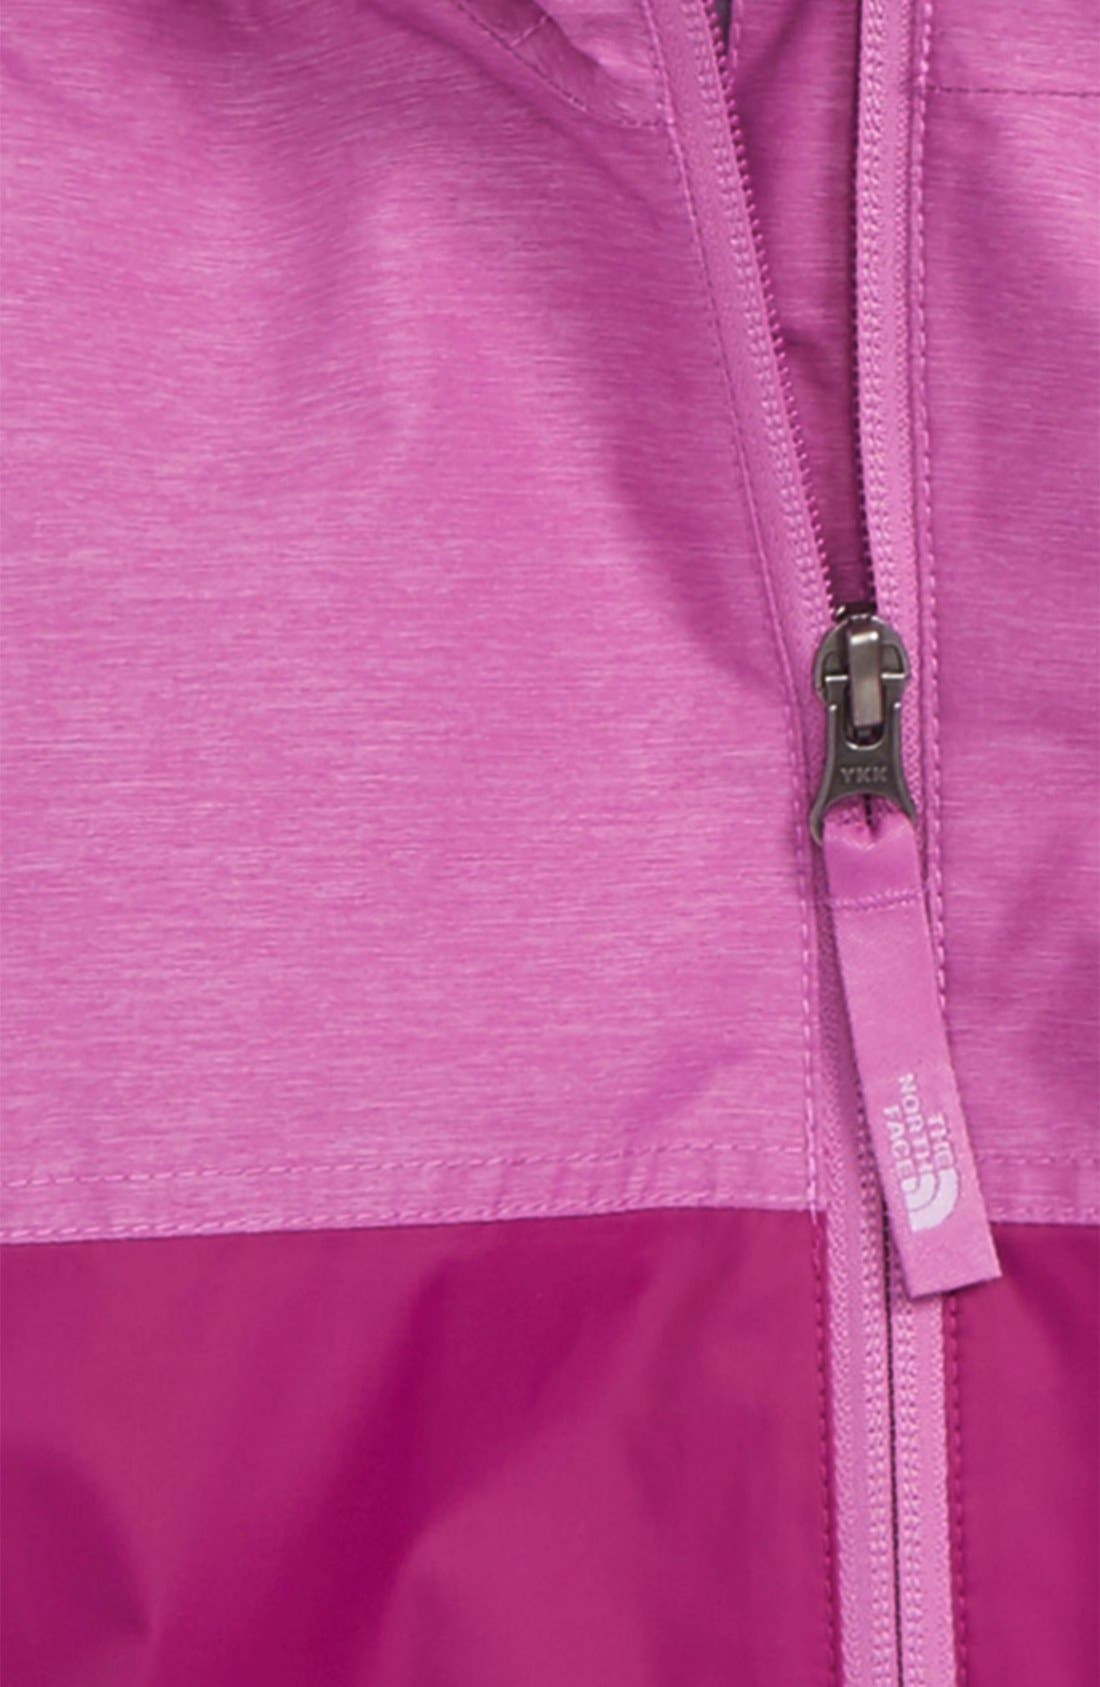 Alternate Image 2  - The North Face 'Warm Storm' Hooded Waterproof Jacket (Baby Girls)